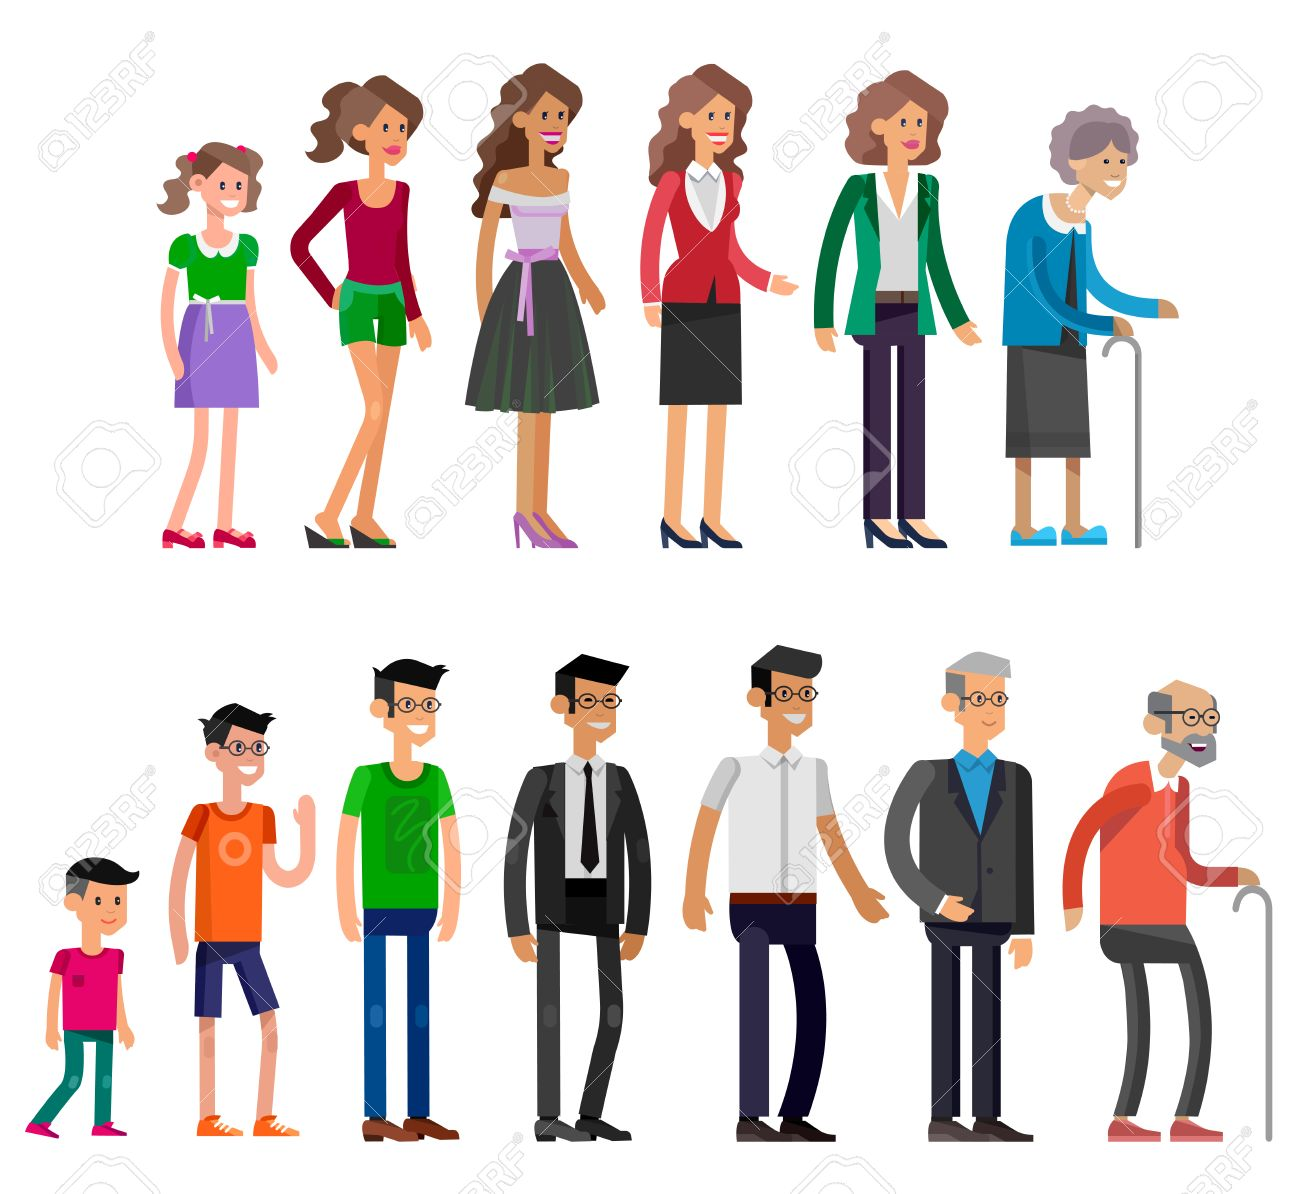 Detailed characters people isolated on white background. Generations woman and men. All age categories - infancy, childhood, adolescence, youth, maturity, old age. Stages of development - 58222654